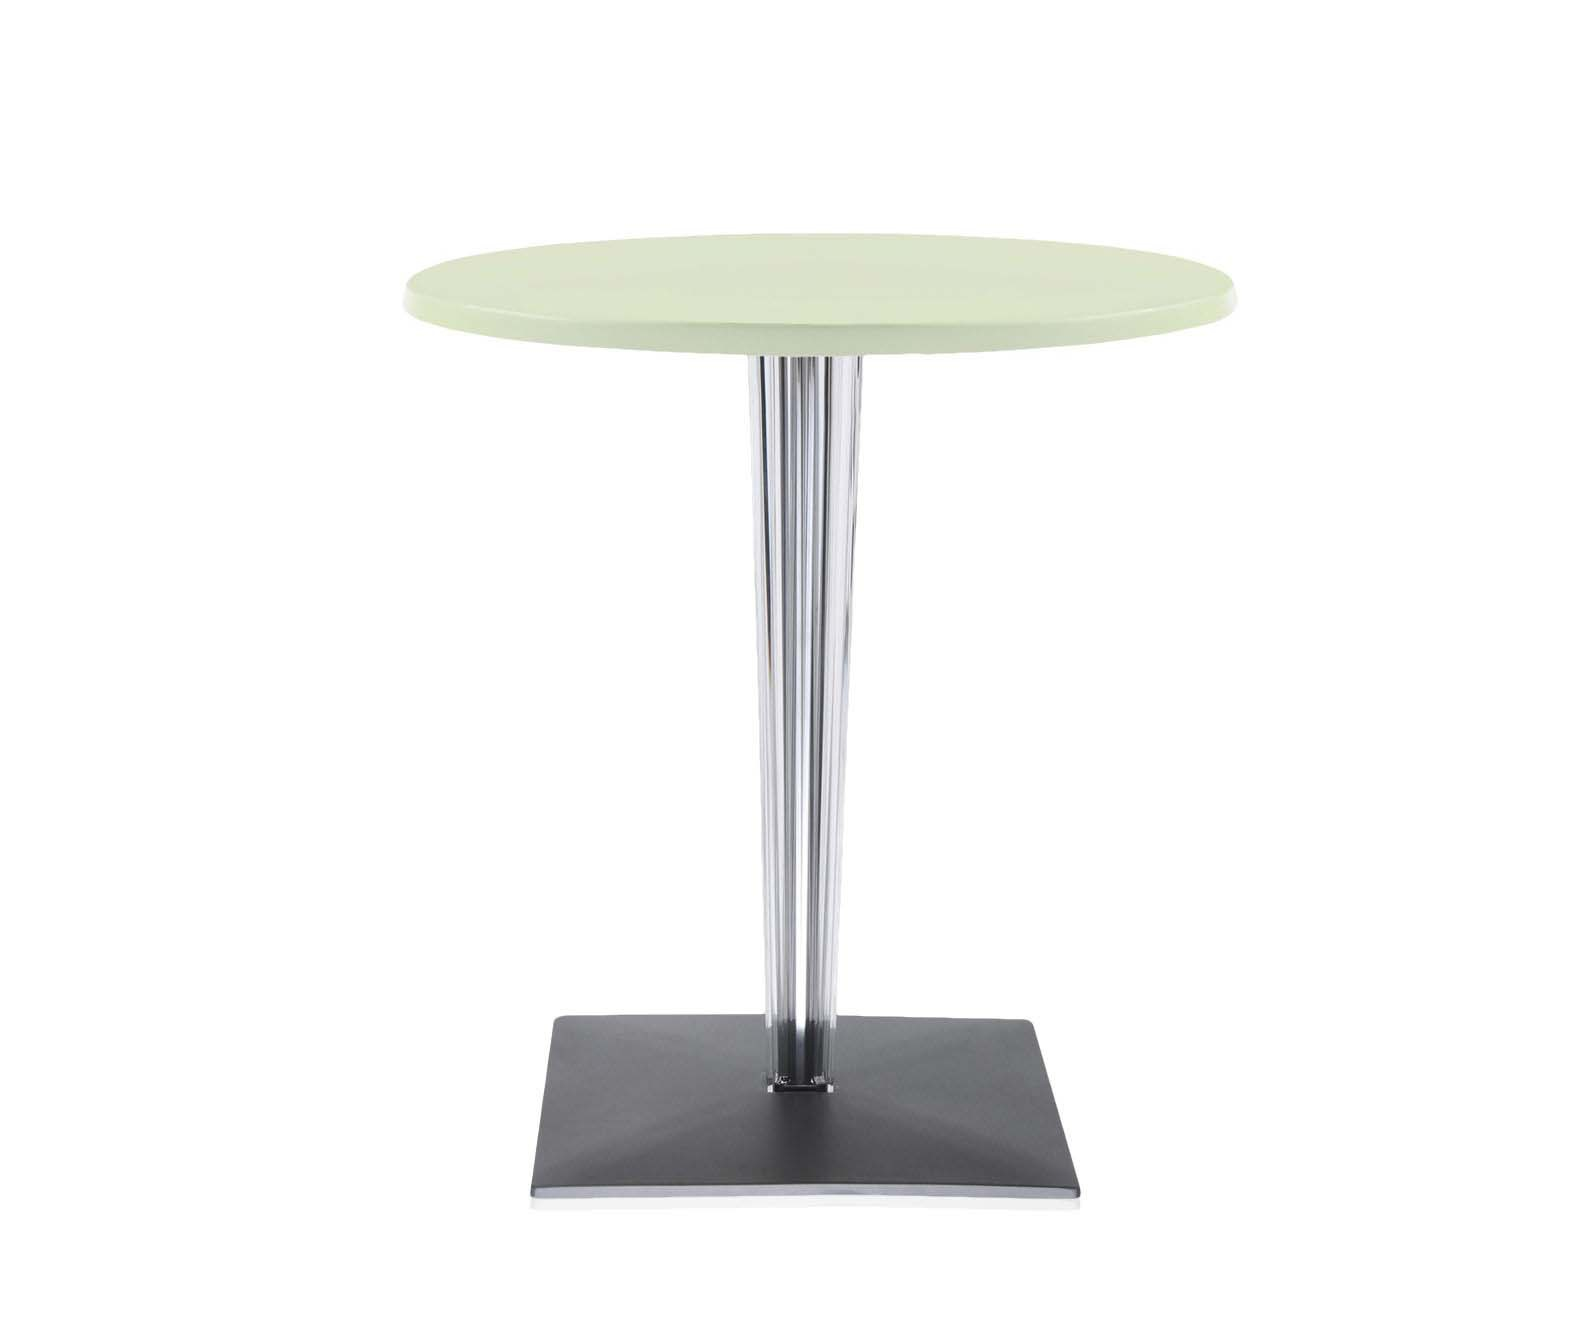 Kartell Round Table Round Table With Plastic Top Top Top Kartell Luxury Furniture